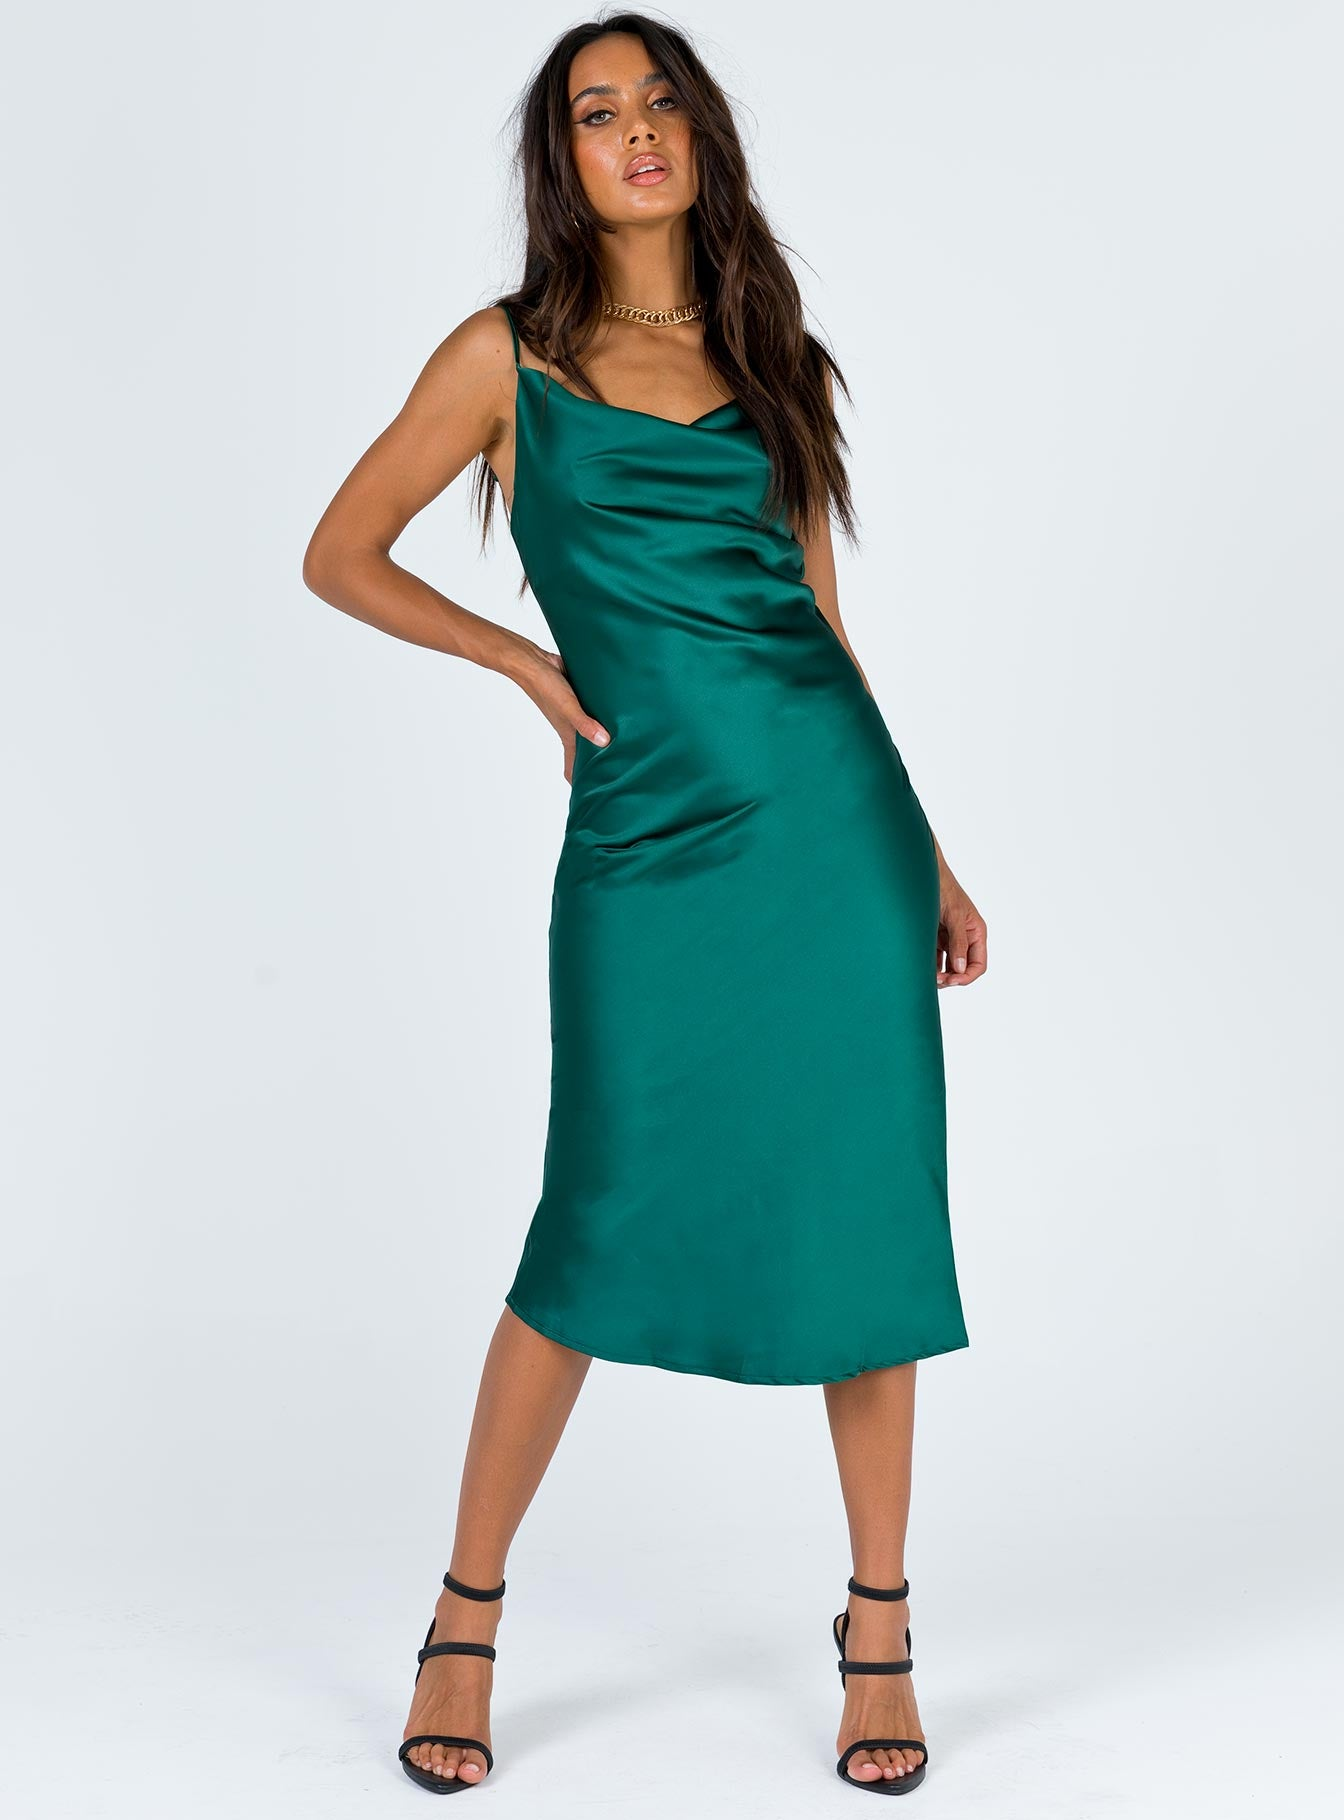 Betta Vanore Midi Dress Forest Green